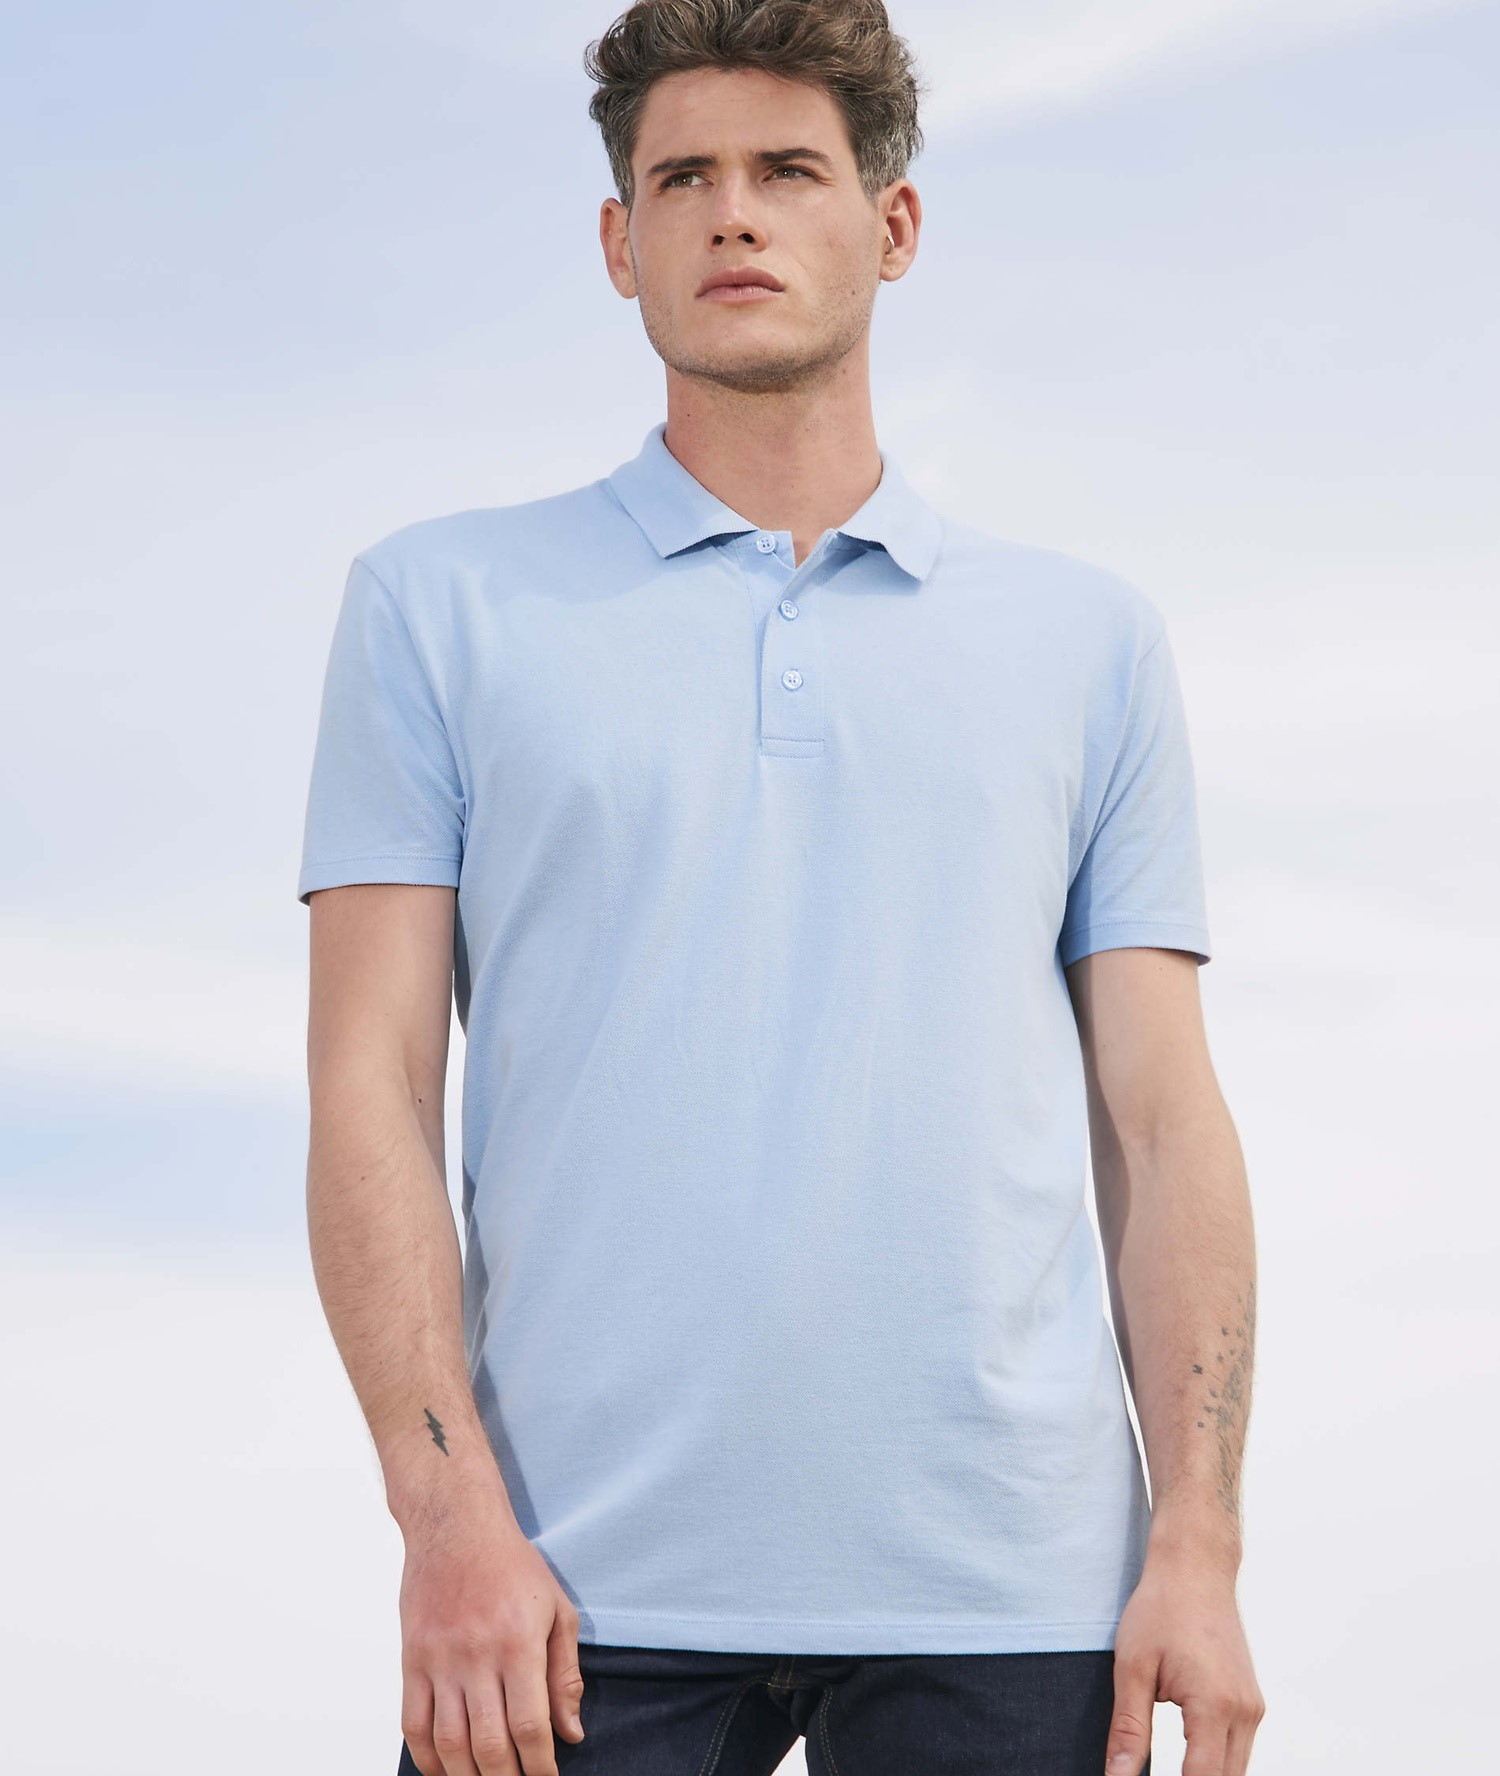 SUMMER II MEN'S POLO SHIRT